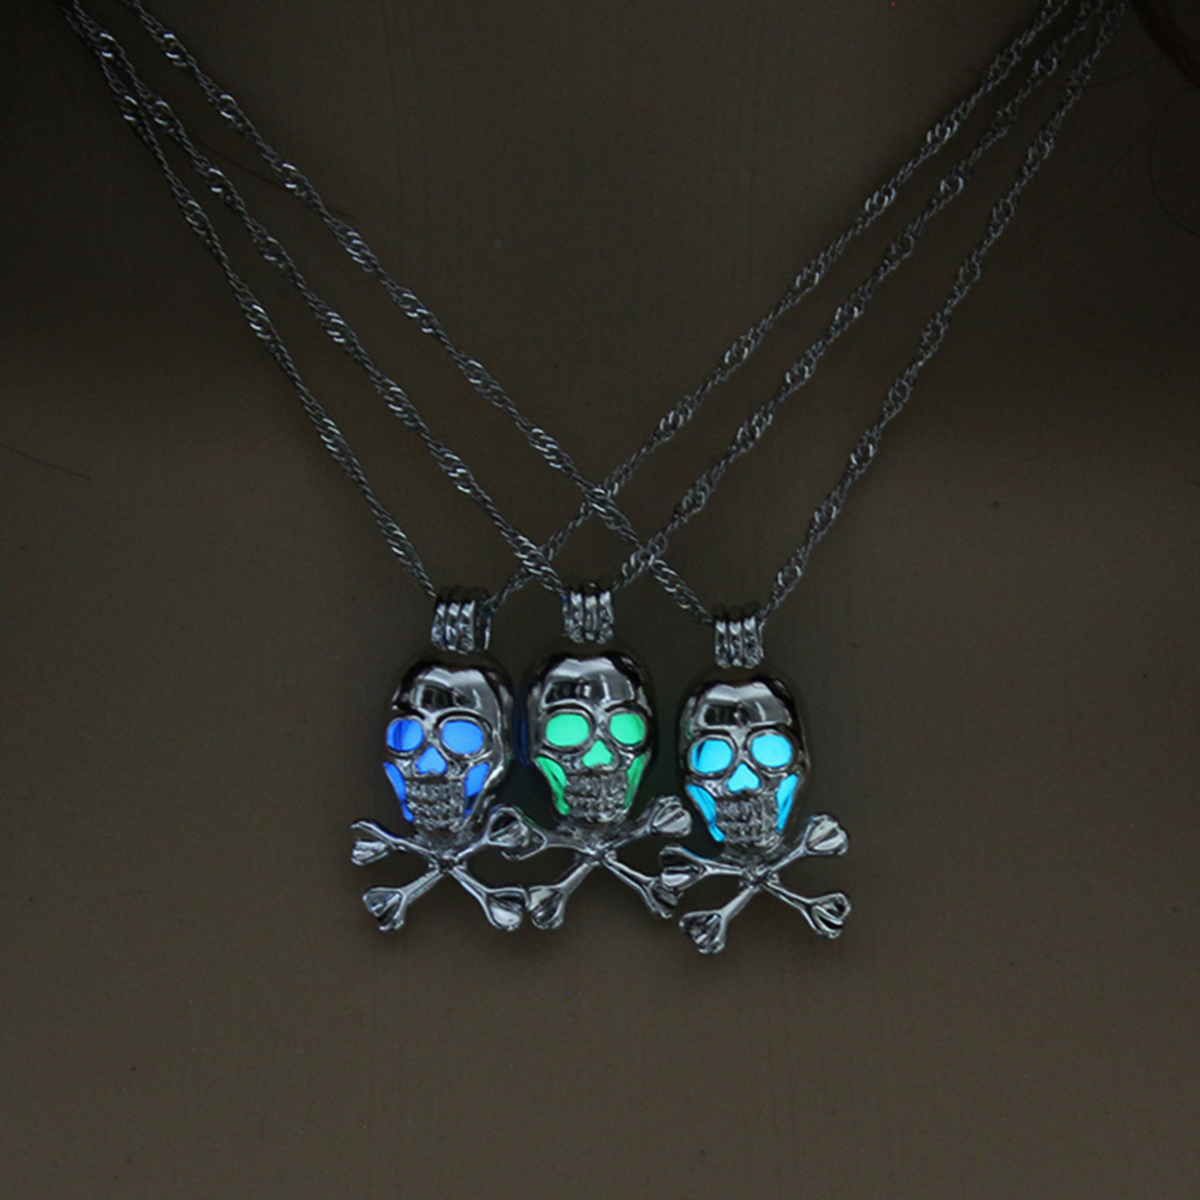 Glow in the Dark Skull Necklace